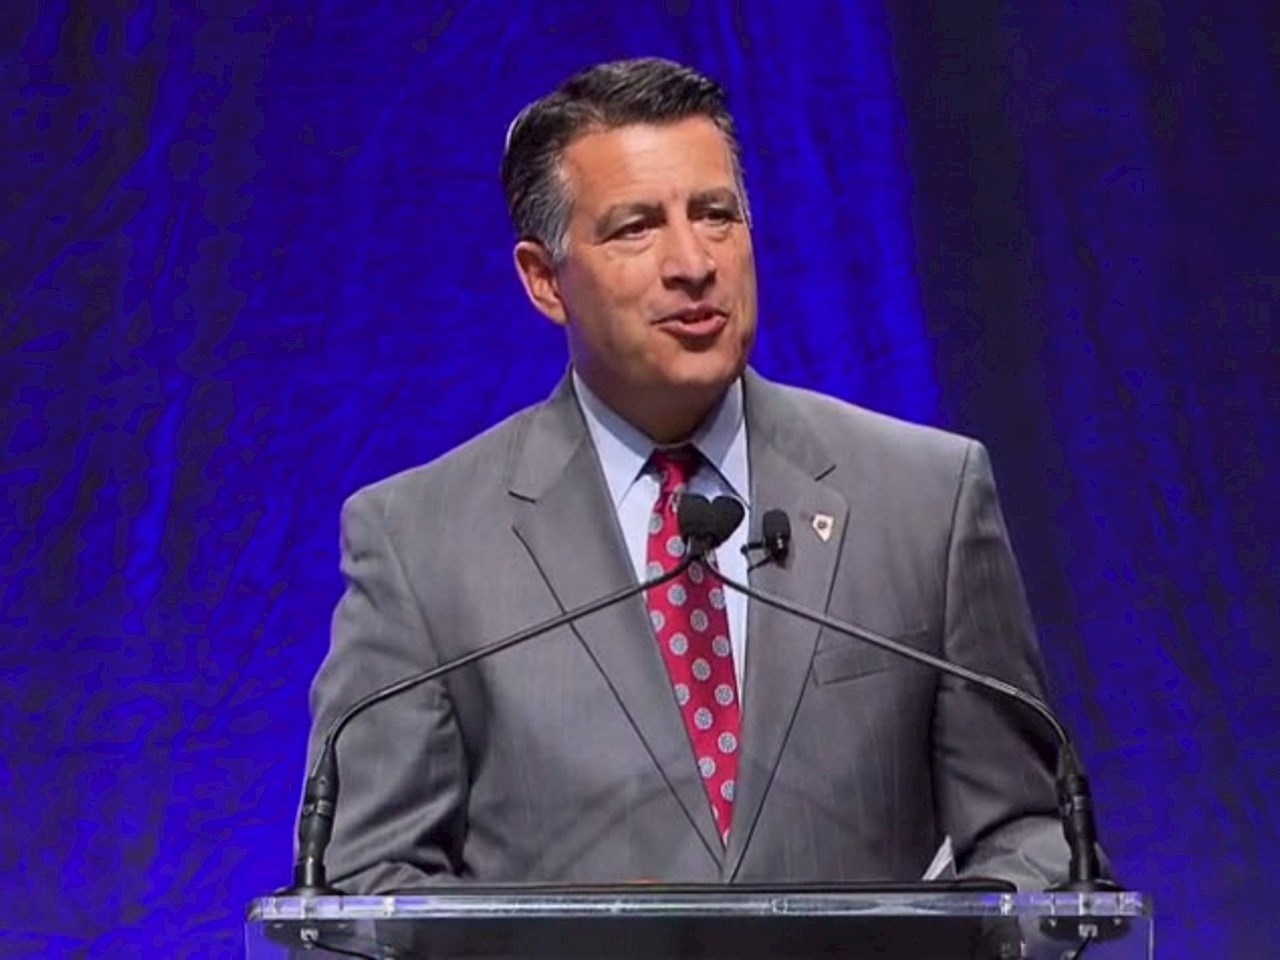 Nevada's Governor Brian Sandoval leading the NGA meeting